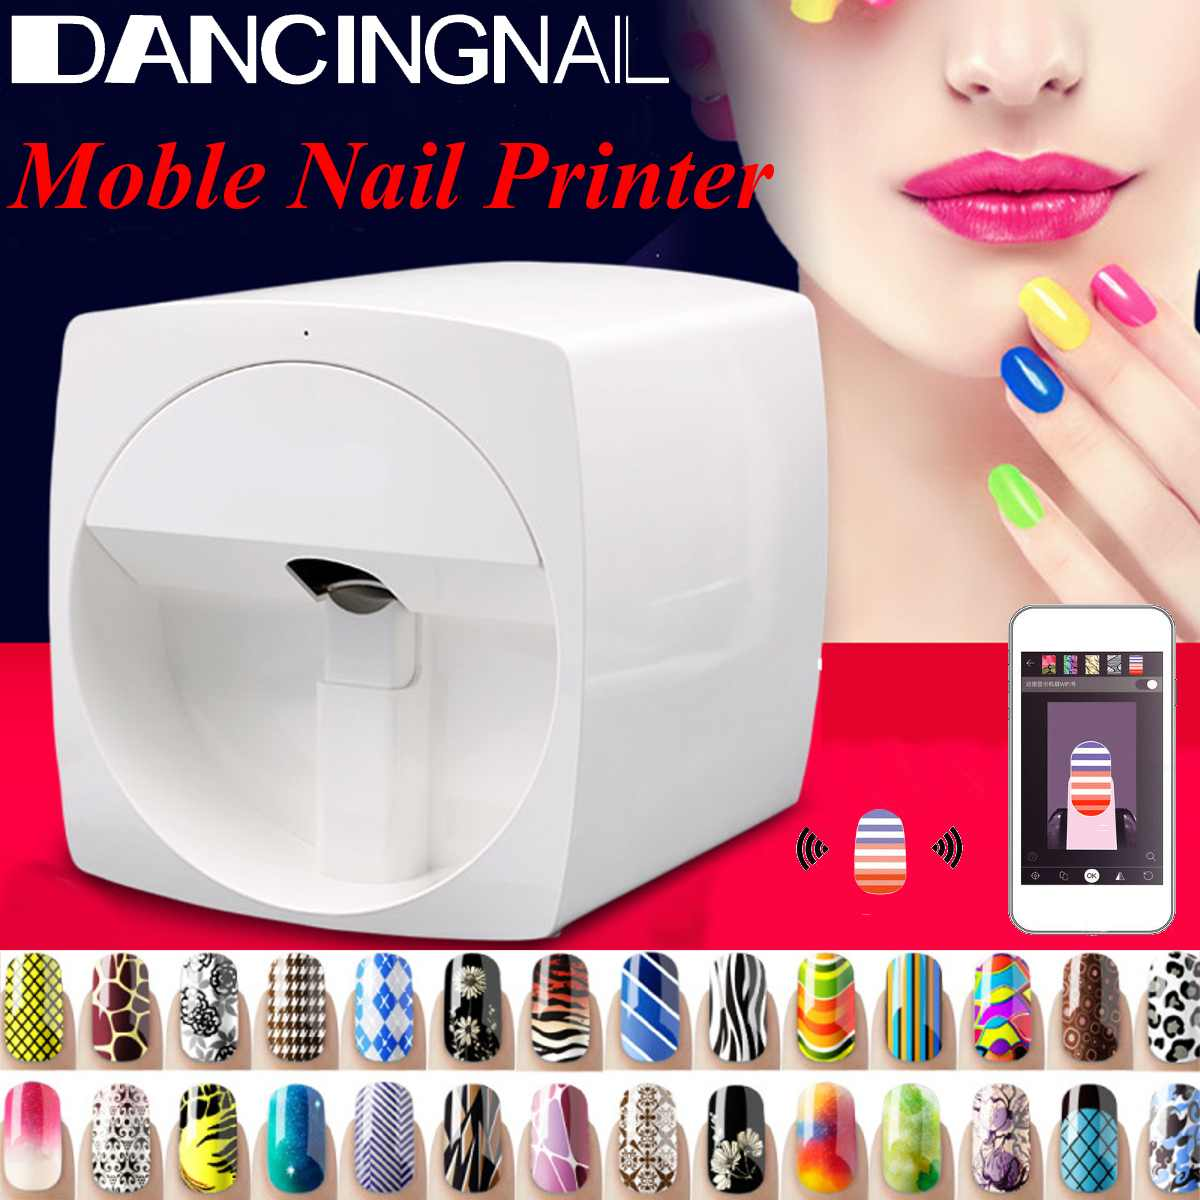 Mobile Nail Printer Machine Manicure Transmission Photo Pattern Color Printing Transfer Picture Design Nail Art Equipment NEW